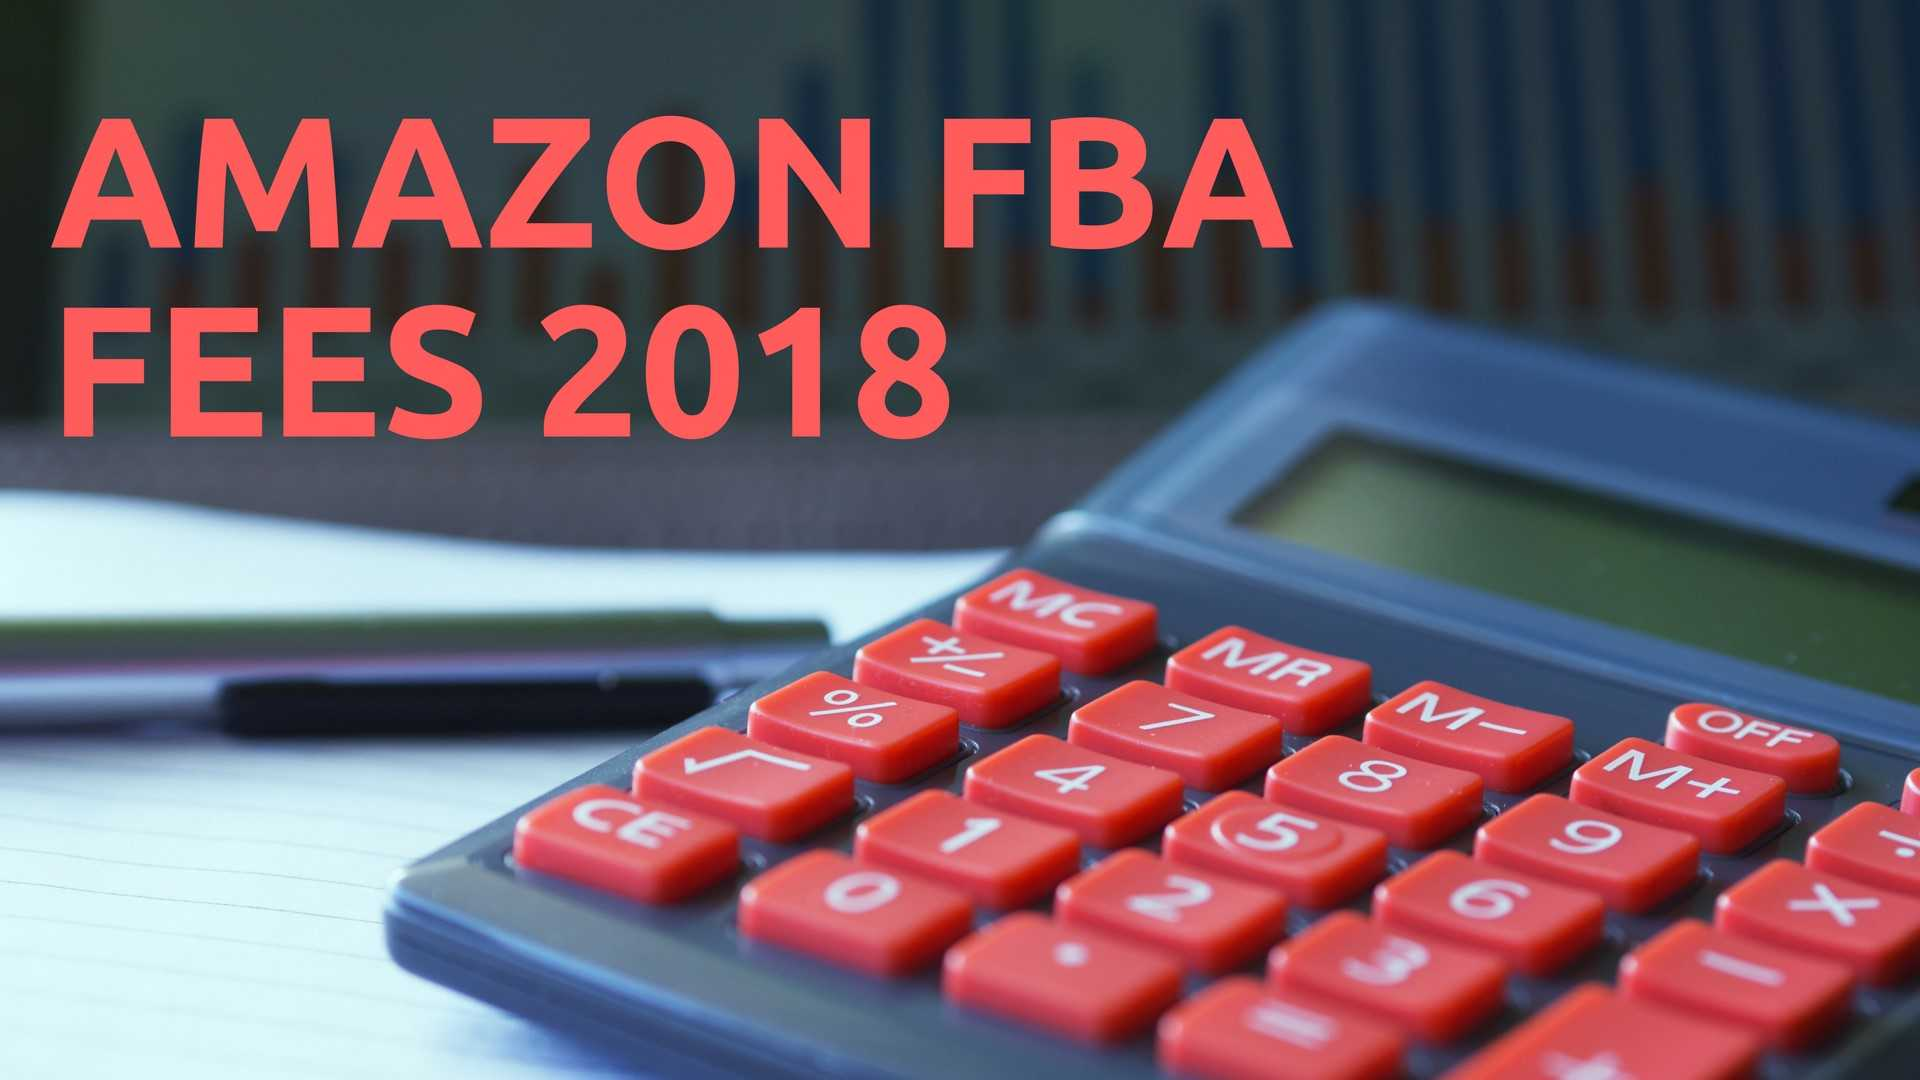 amazon fba fees changes 2018